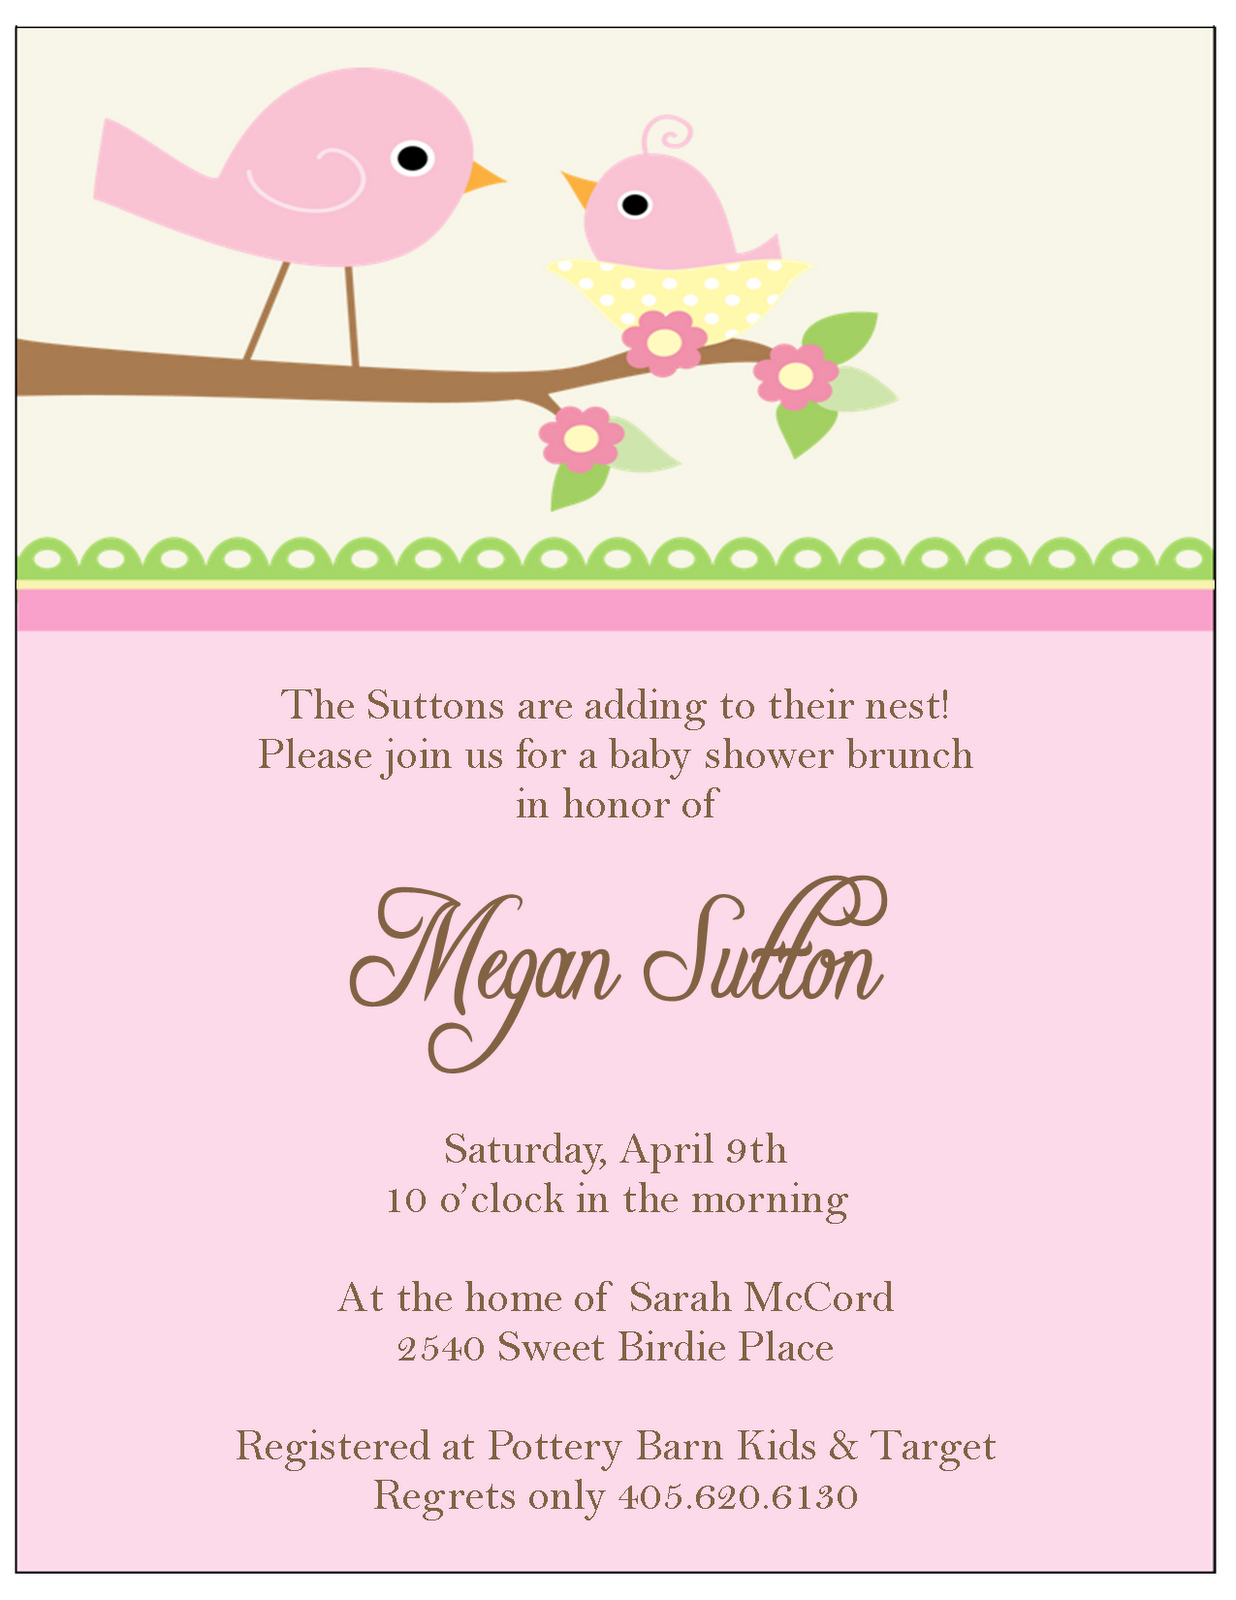 baby shower invitations | the sweet peach paperie: little birdie, Baby shower invitations